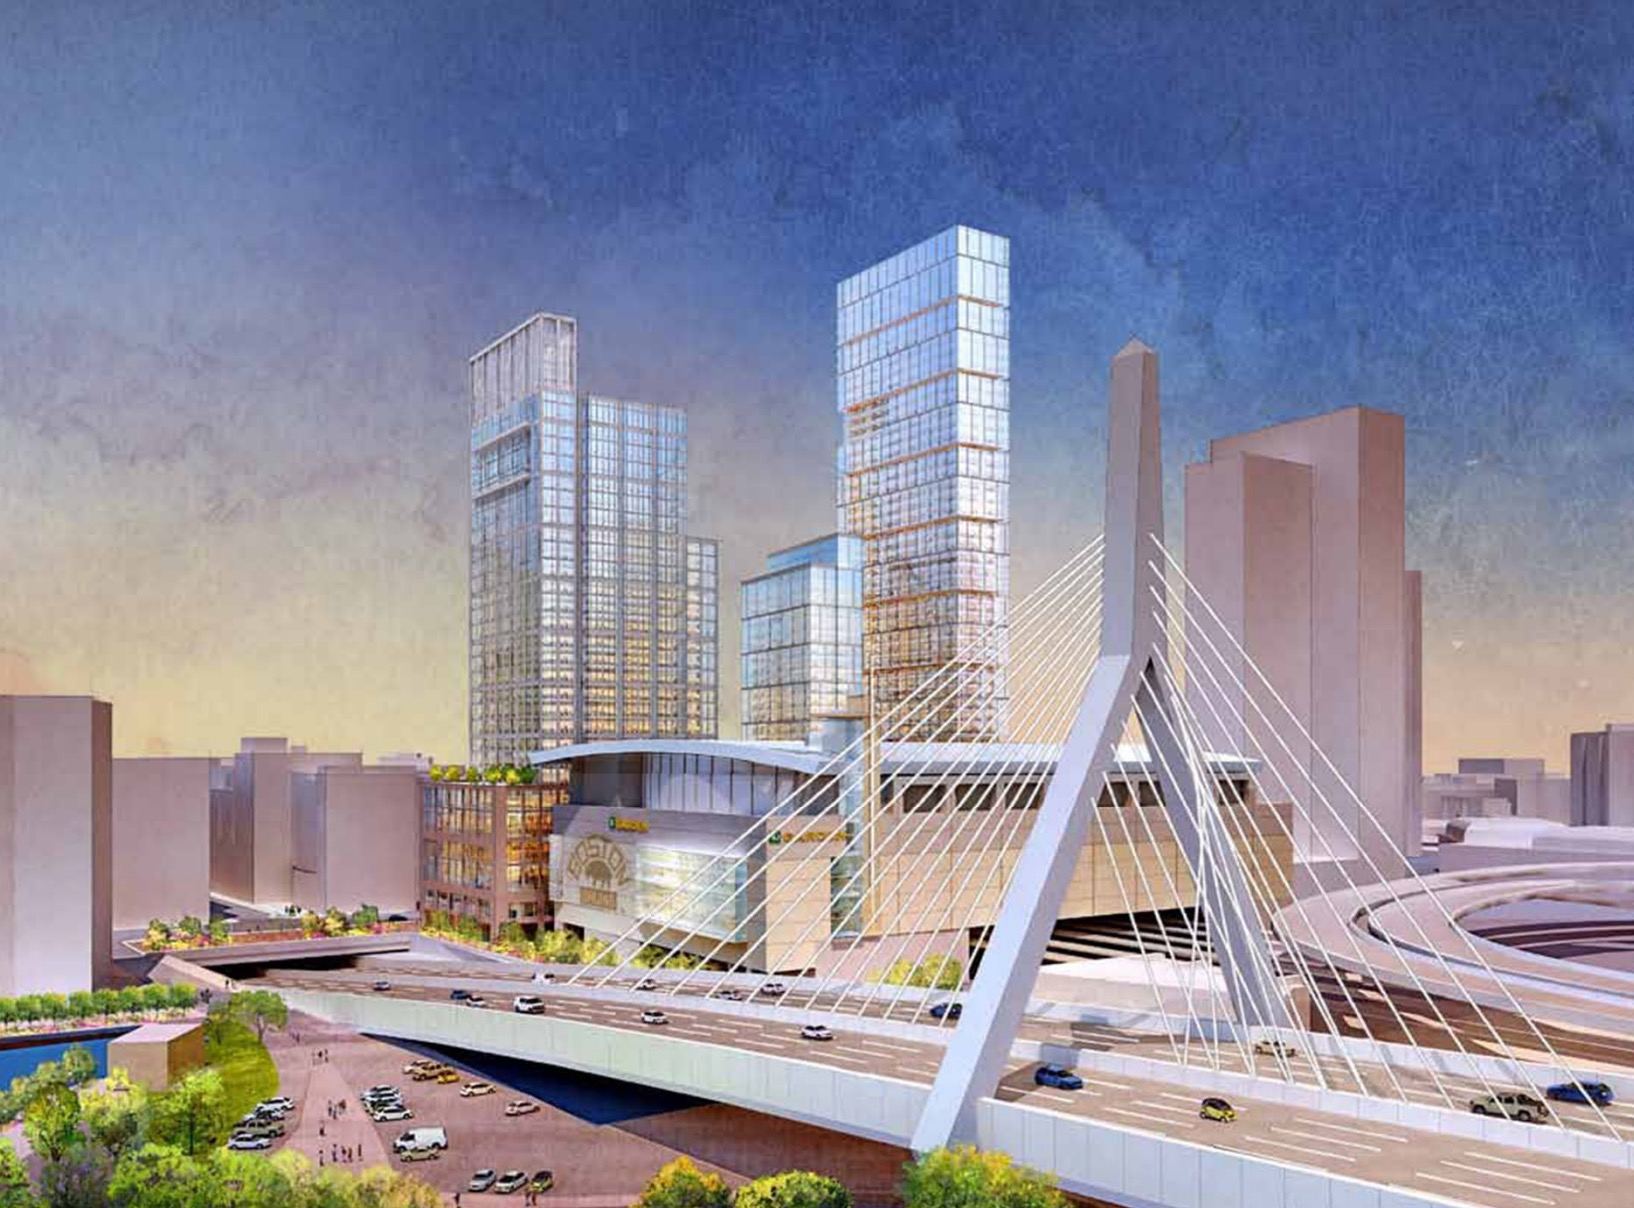 star market signs lease at boston garden development project